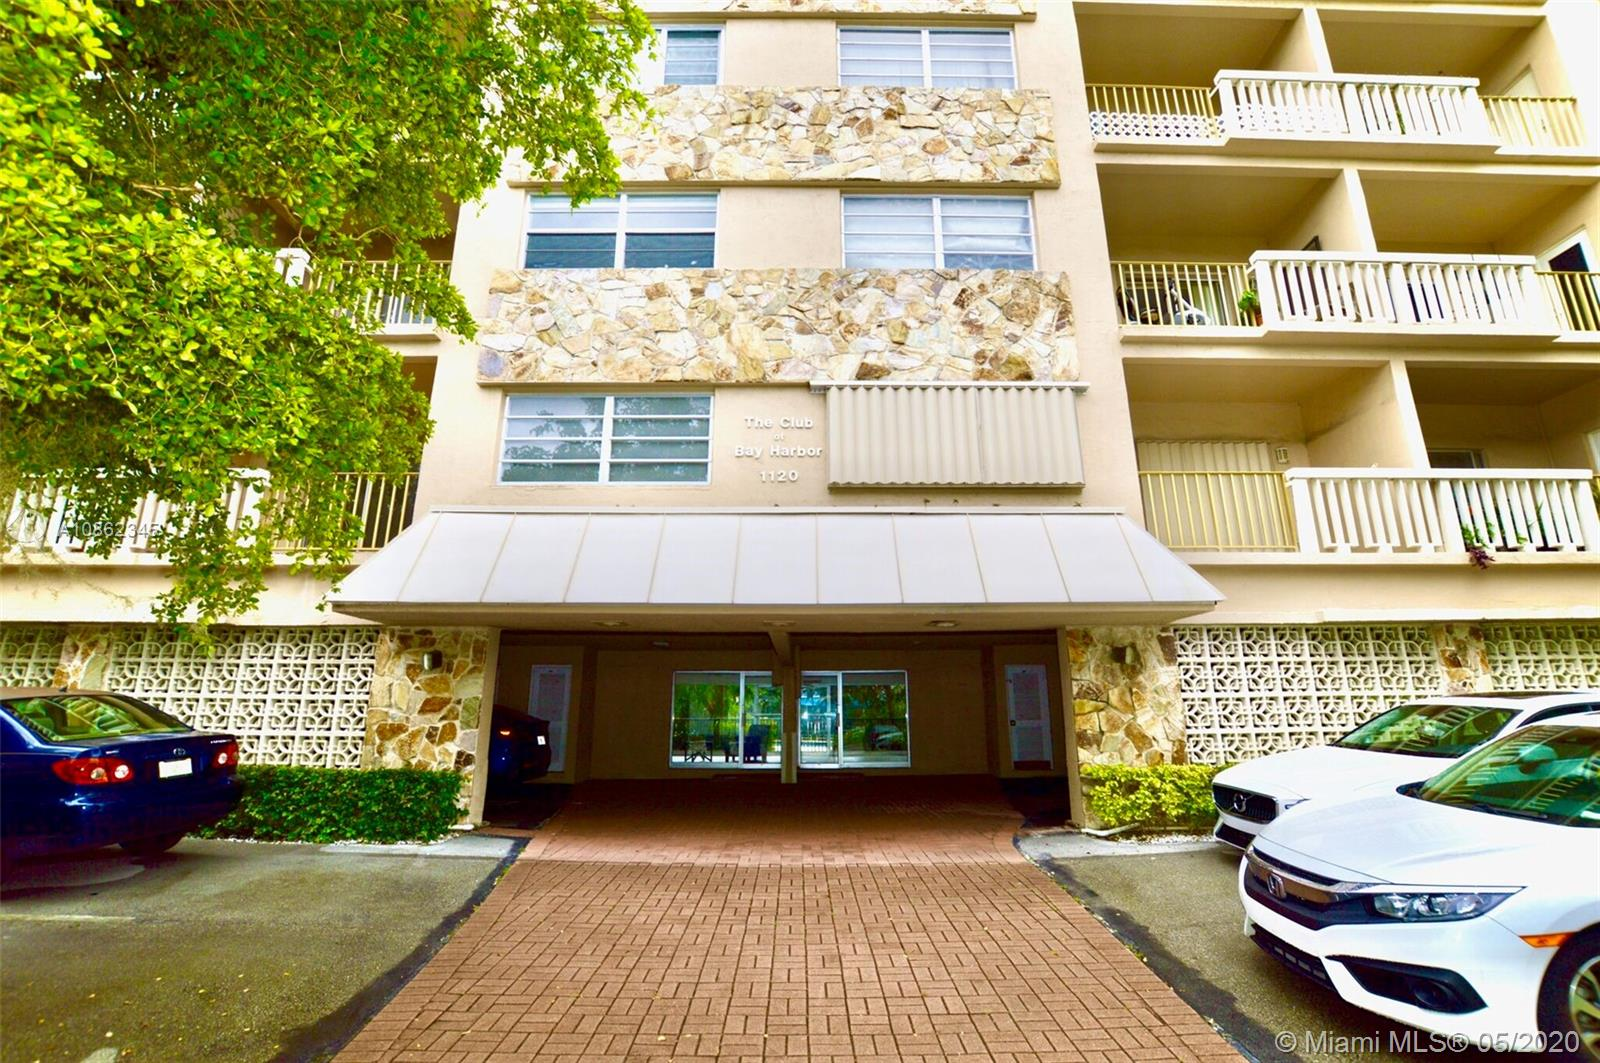 1 Bedroom 1.5 bath plus a den or office corner unit with balcony close to Collins and 96th st. Unit has been remodeled and selling furnished.